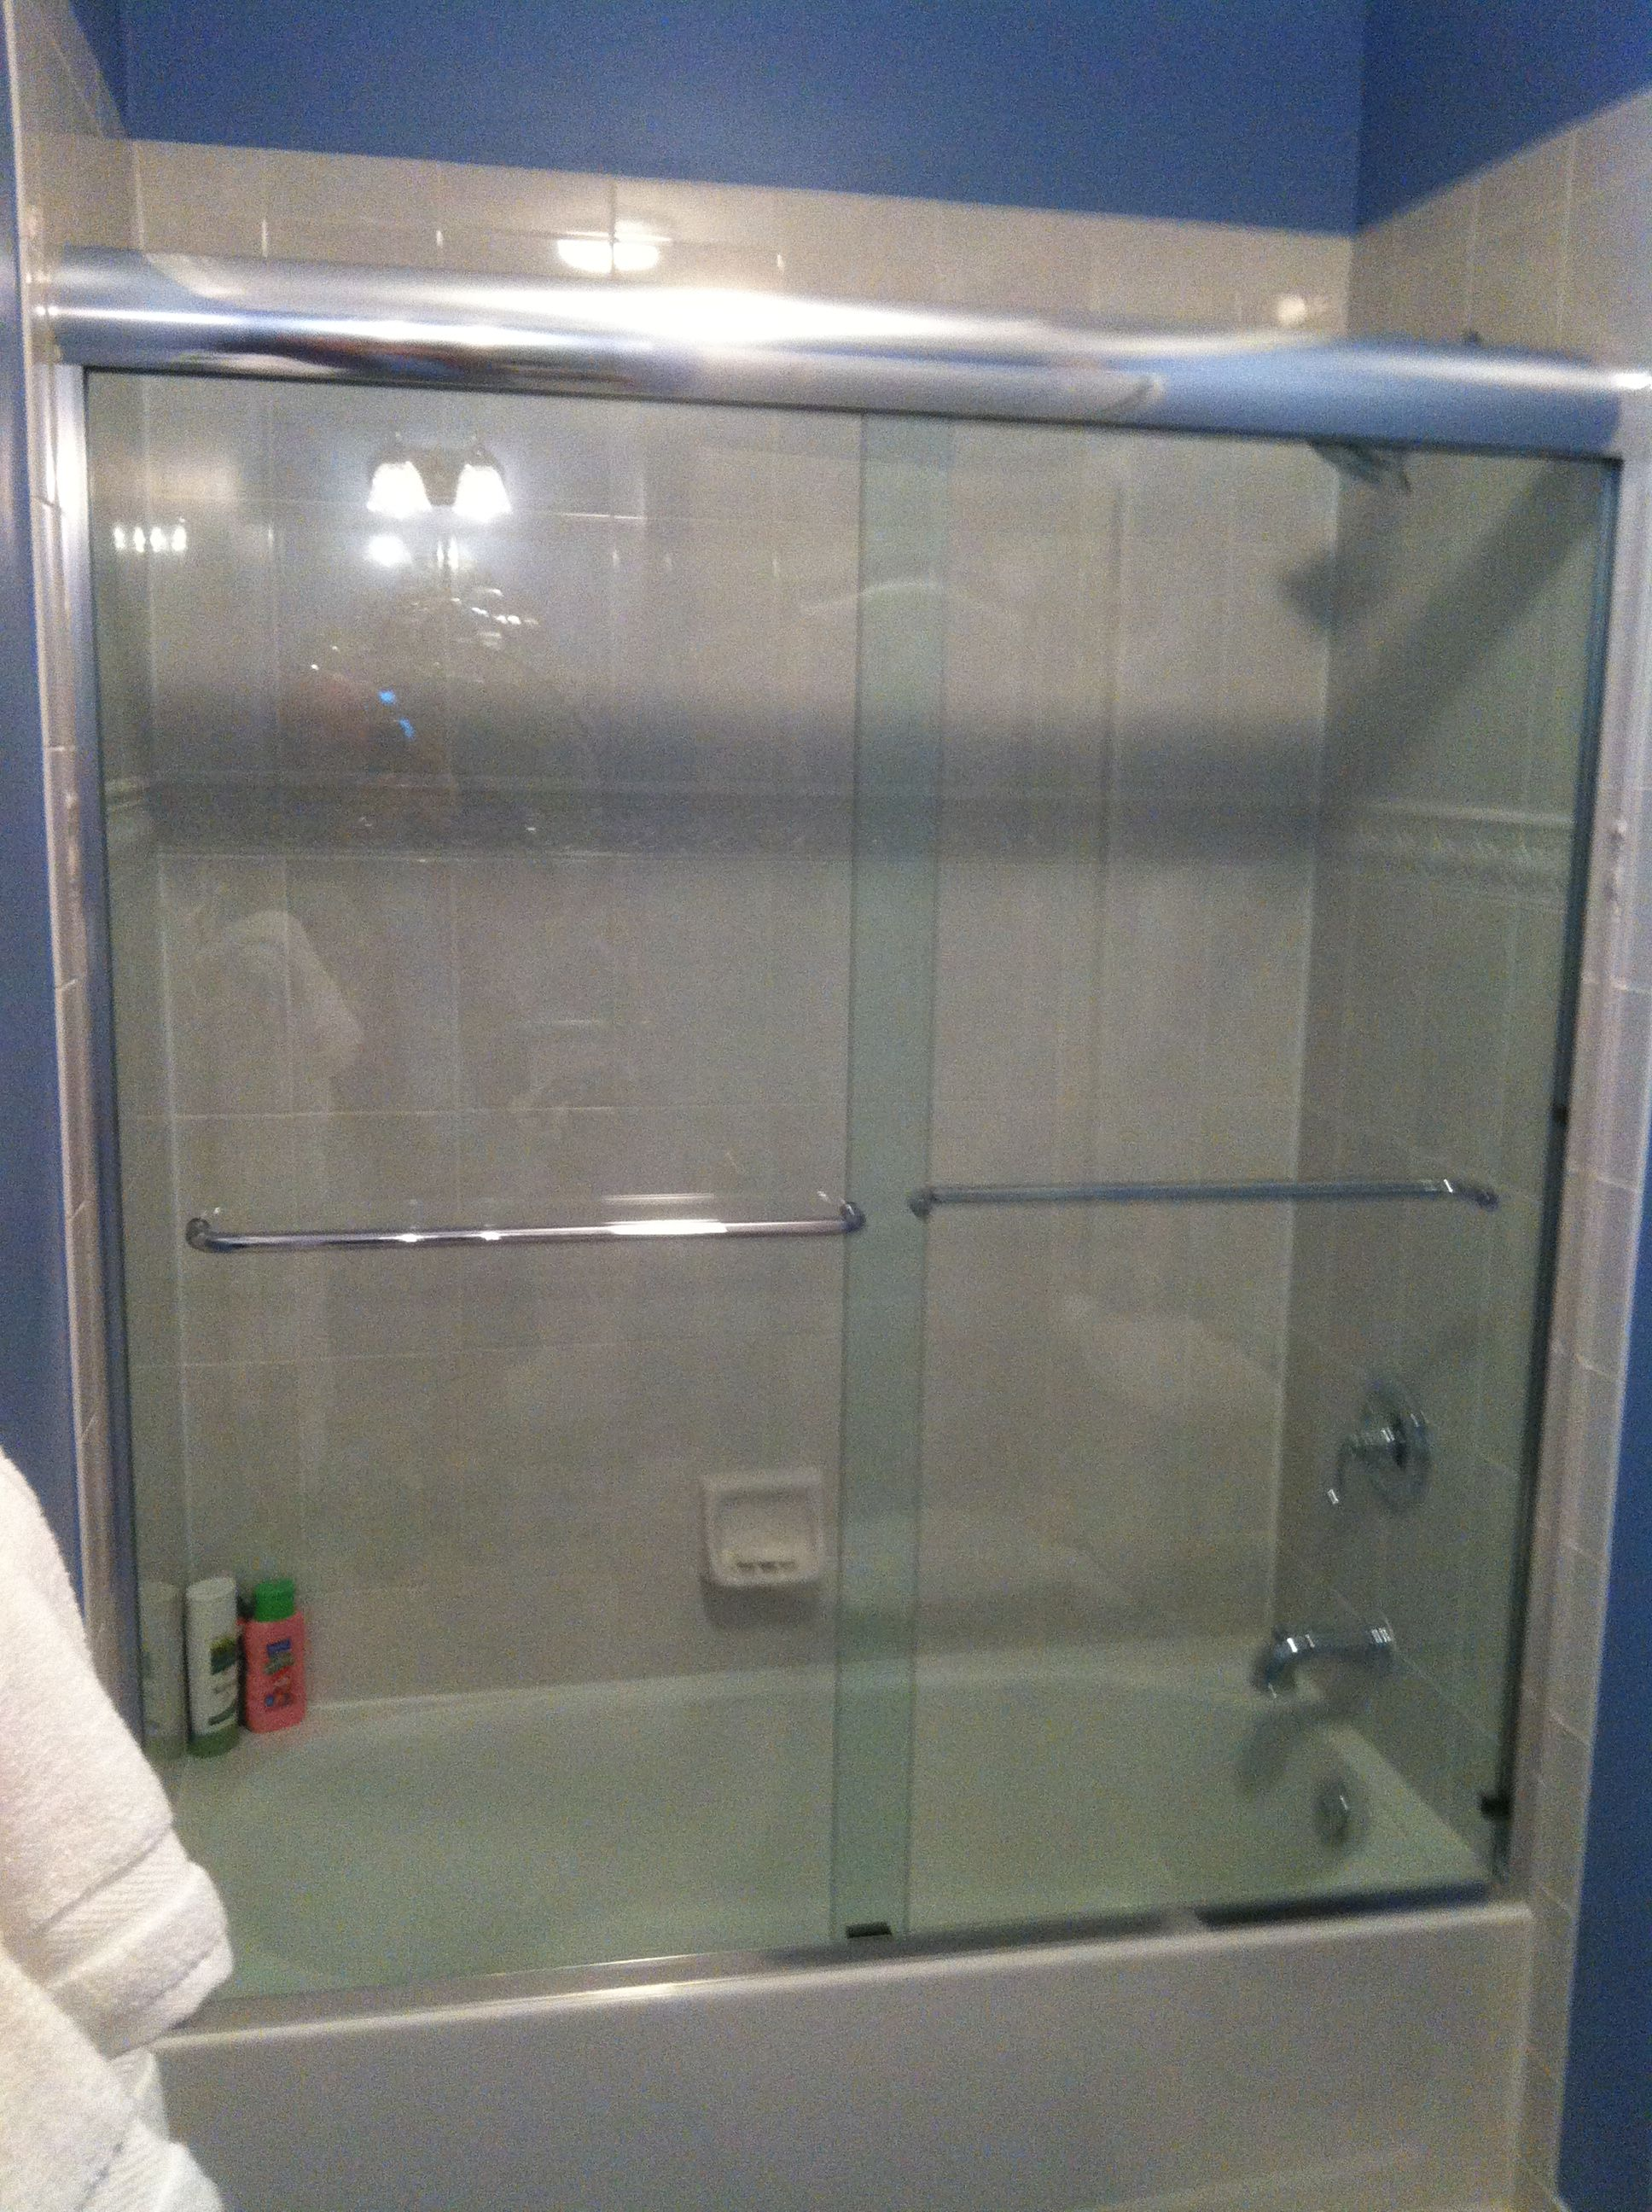 Sliding Glass Tub Enclosure With Chrome Headrail And Hardware We Use Highest Quality Sliding Wheels